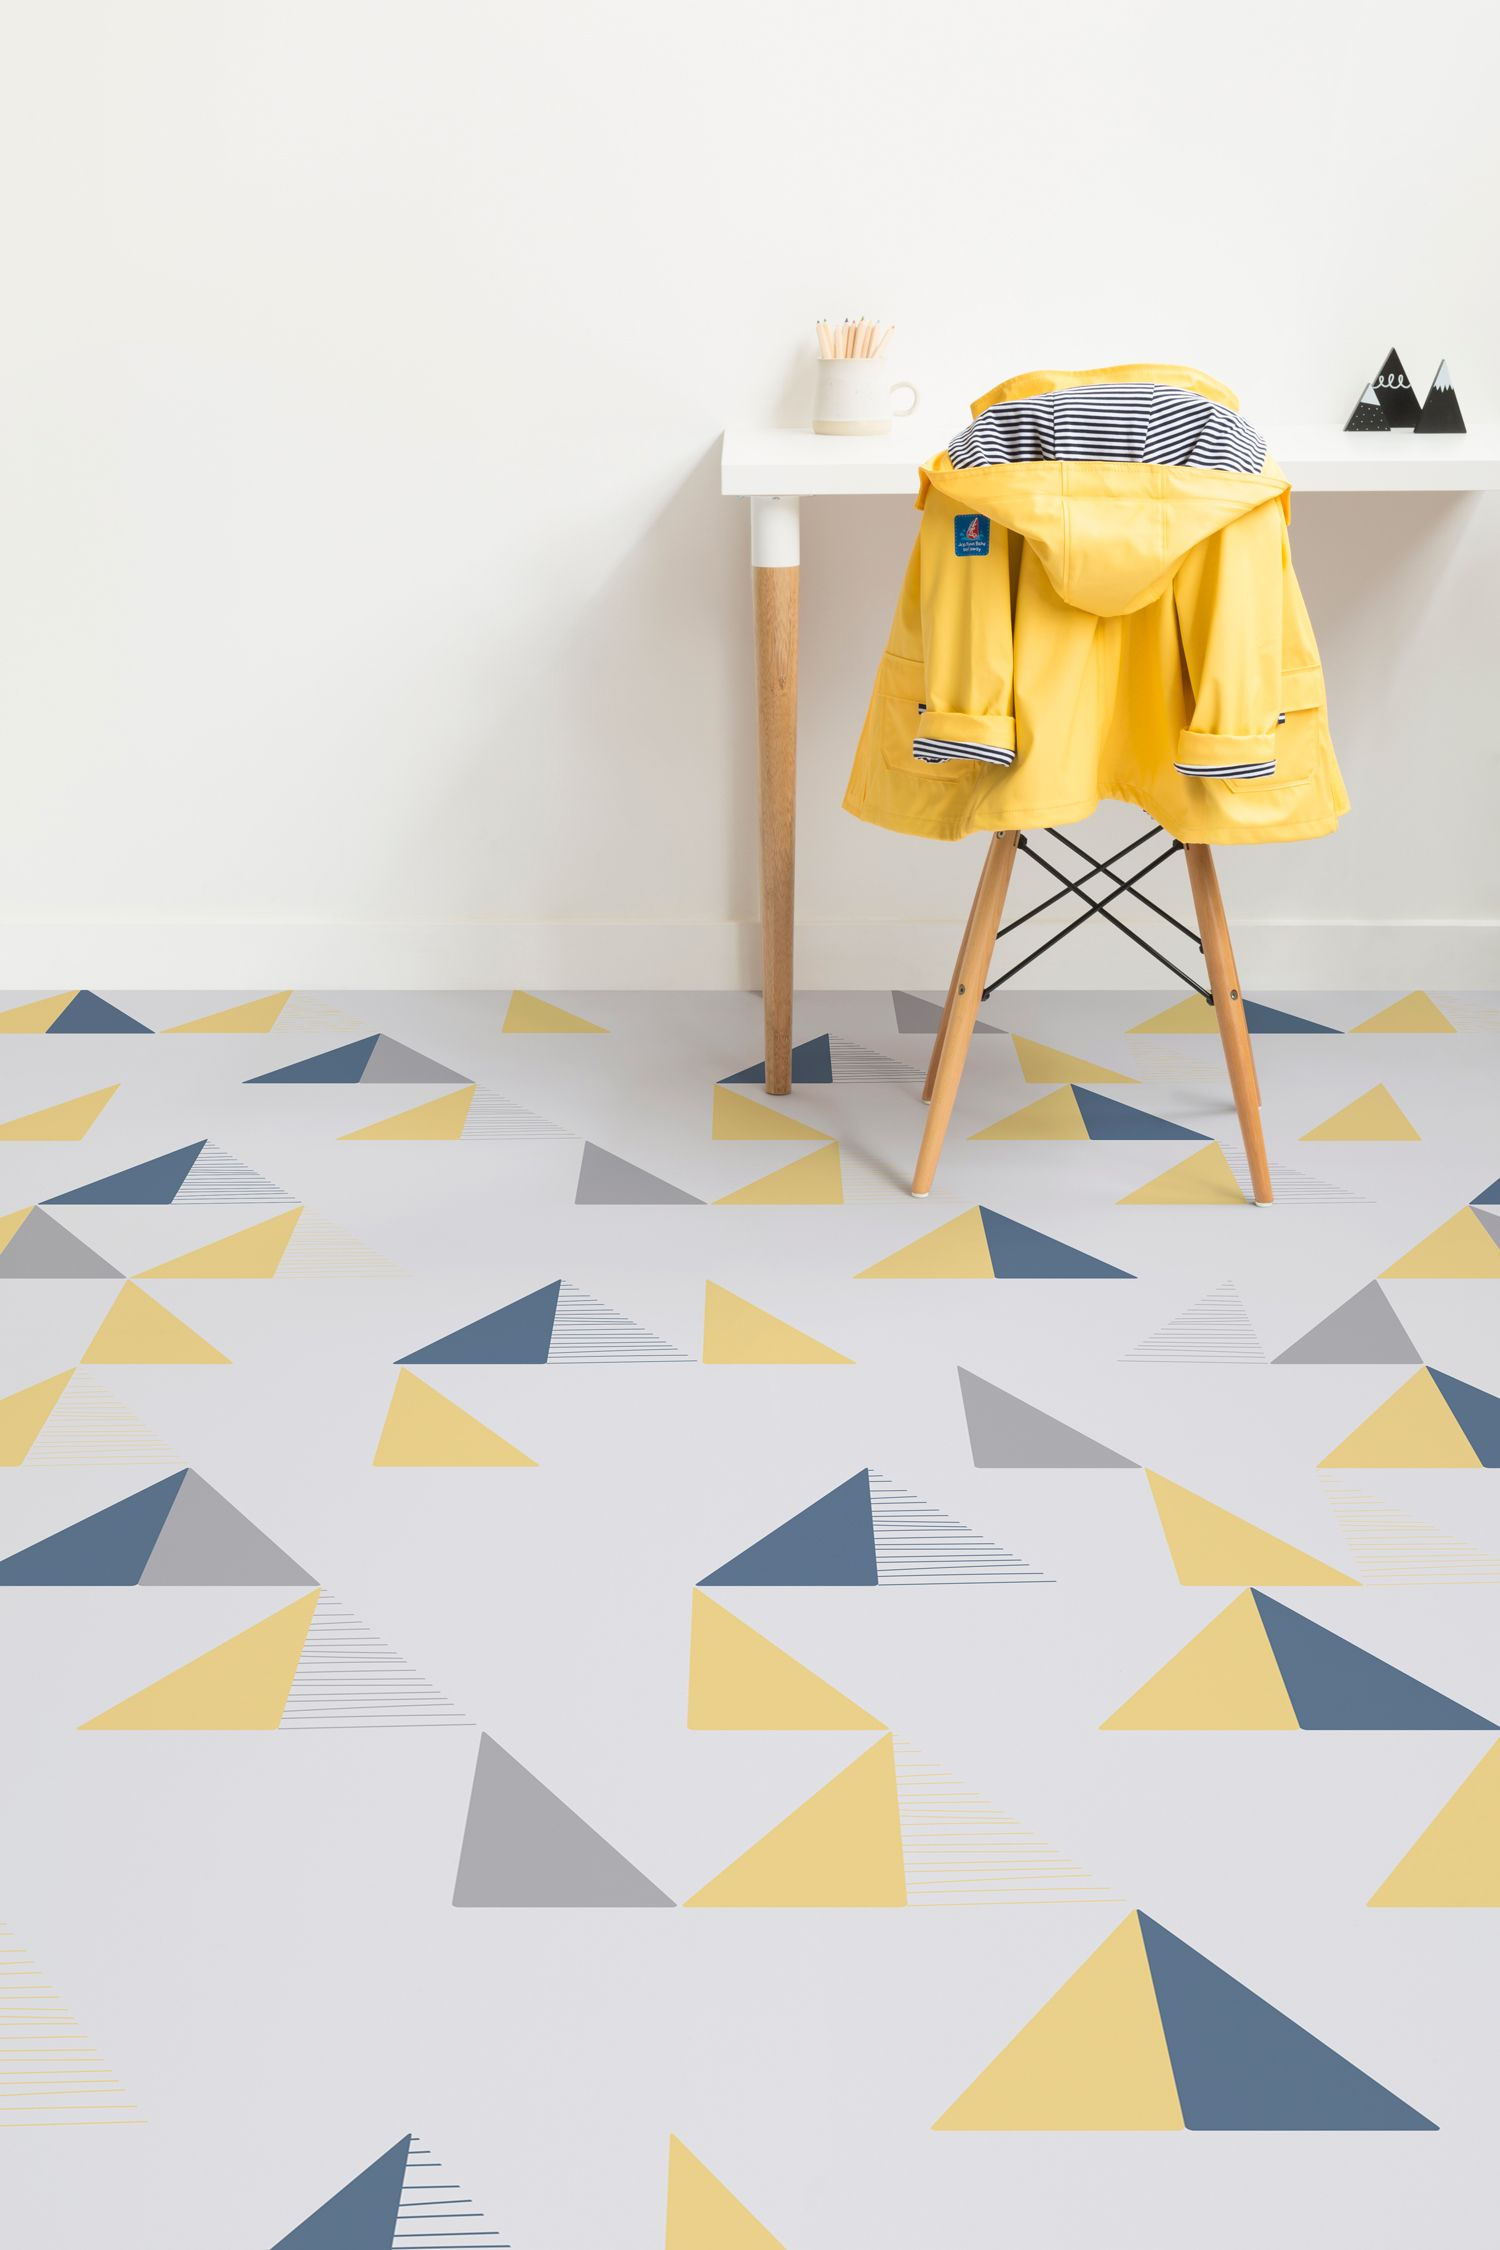 Montana Is A Triangle Modern Vinyl Flooring Design That Features Geometric Shapes In Bold Charming Blue Yellow And Grey Colours Against